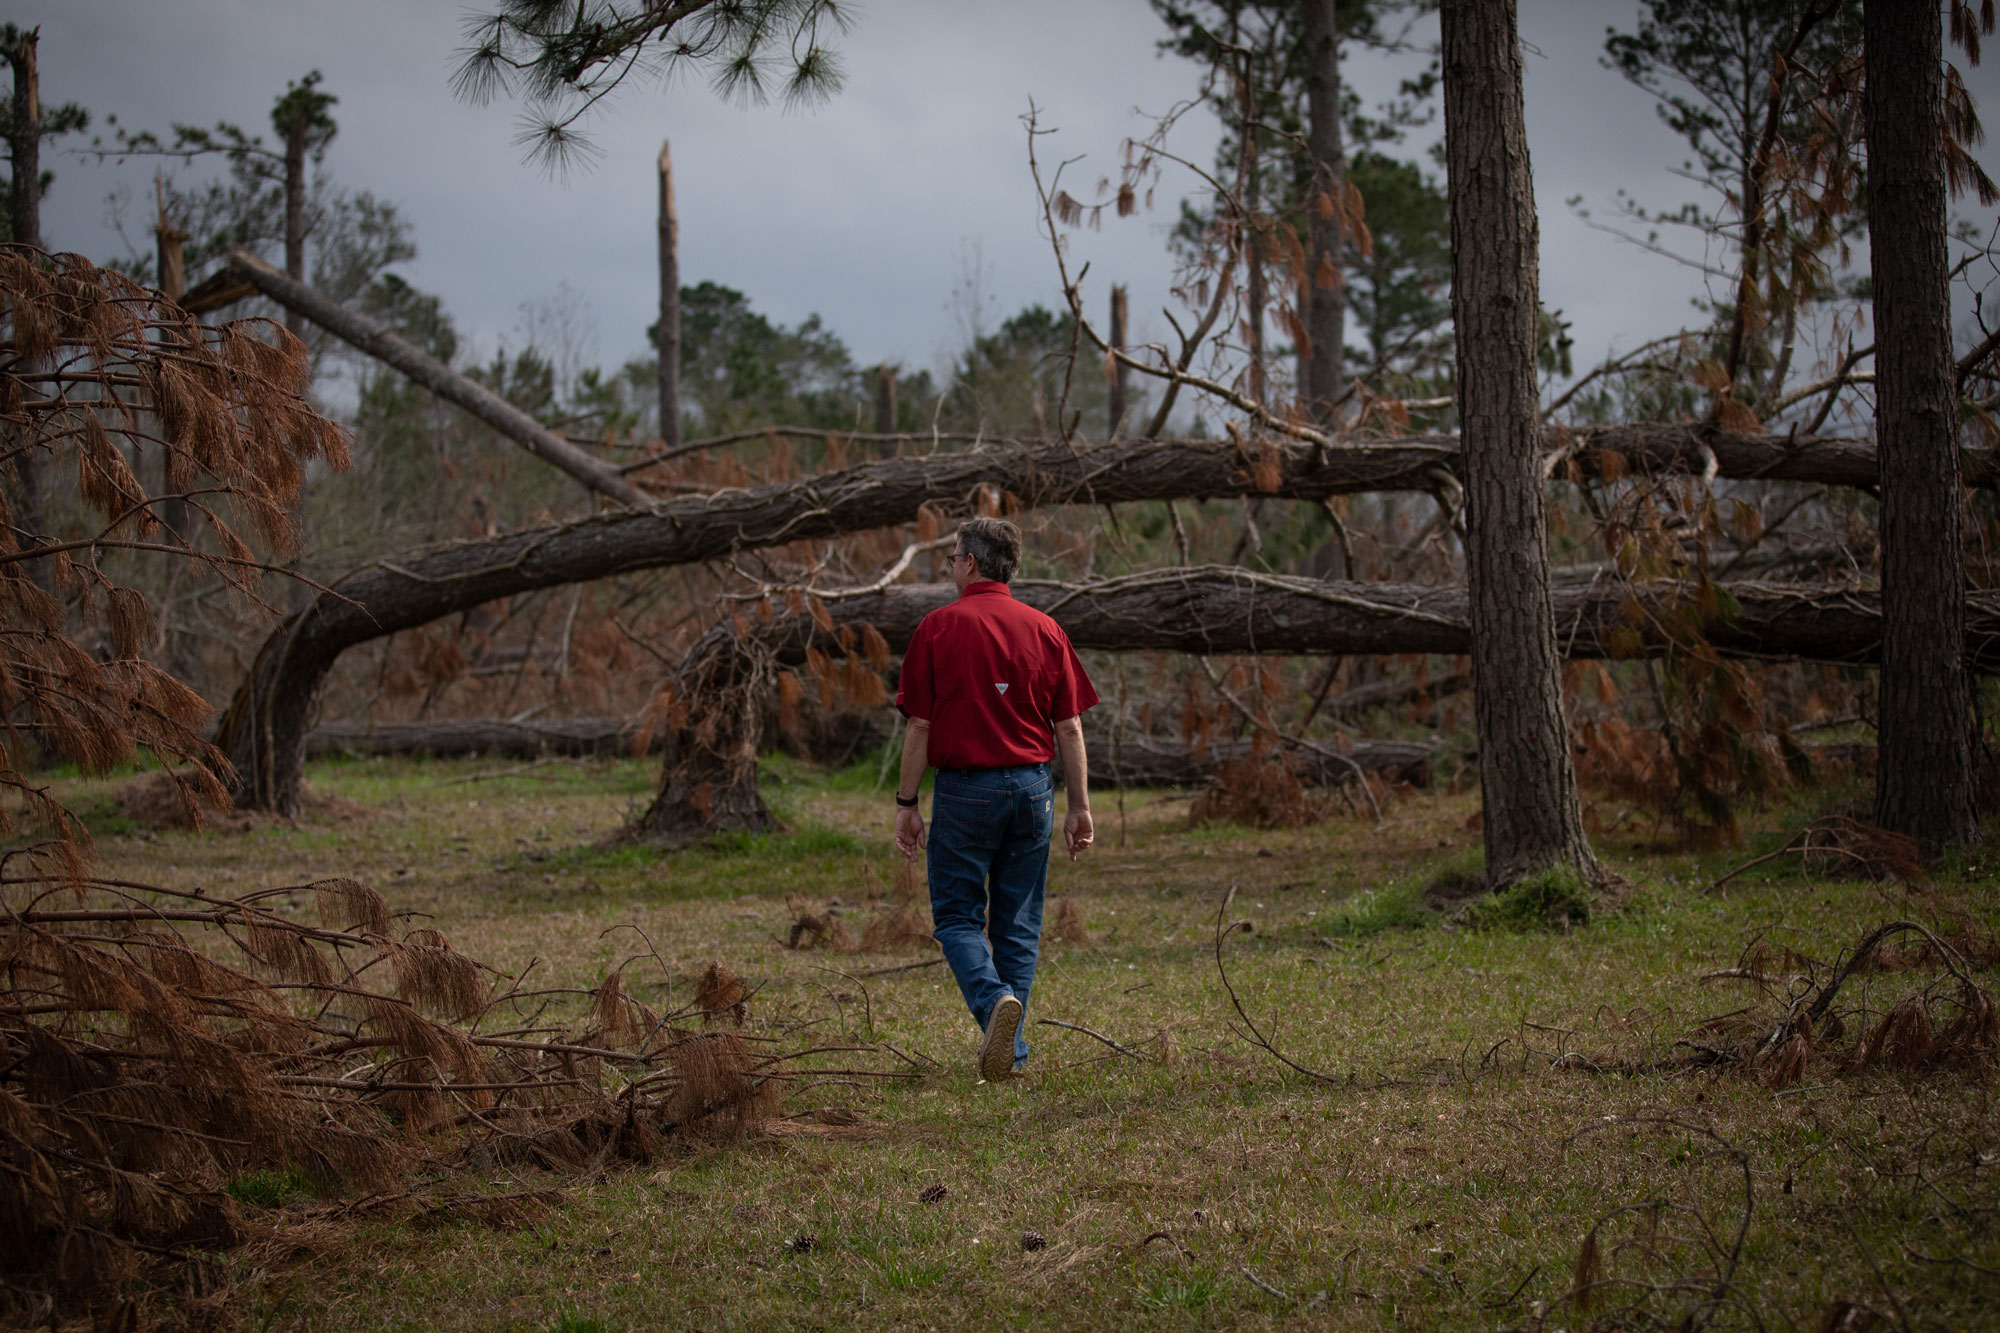 Harvest: Recovery and Risk after Hurricane Michael - Collateral - The Weather Channel